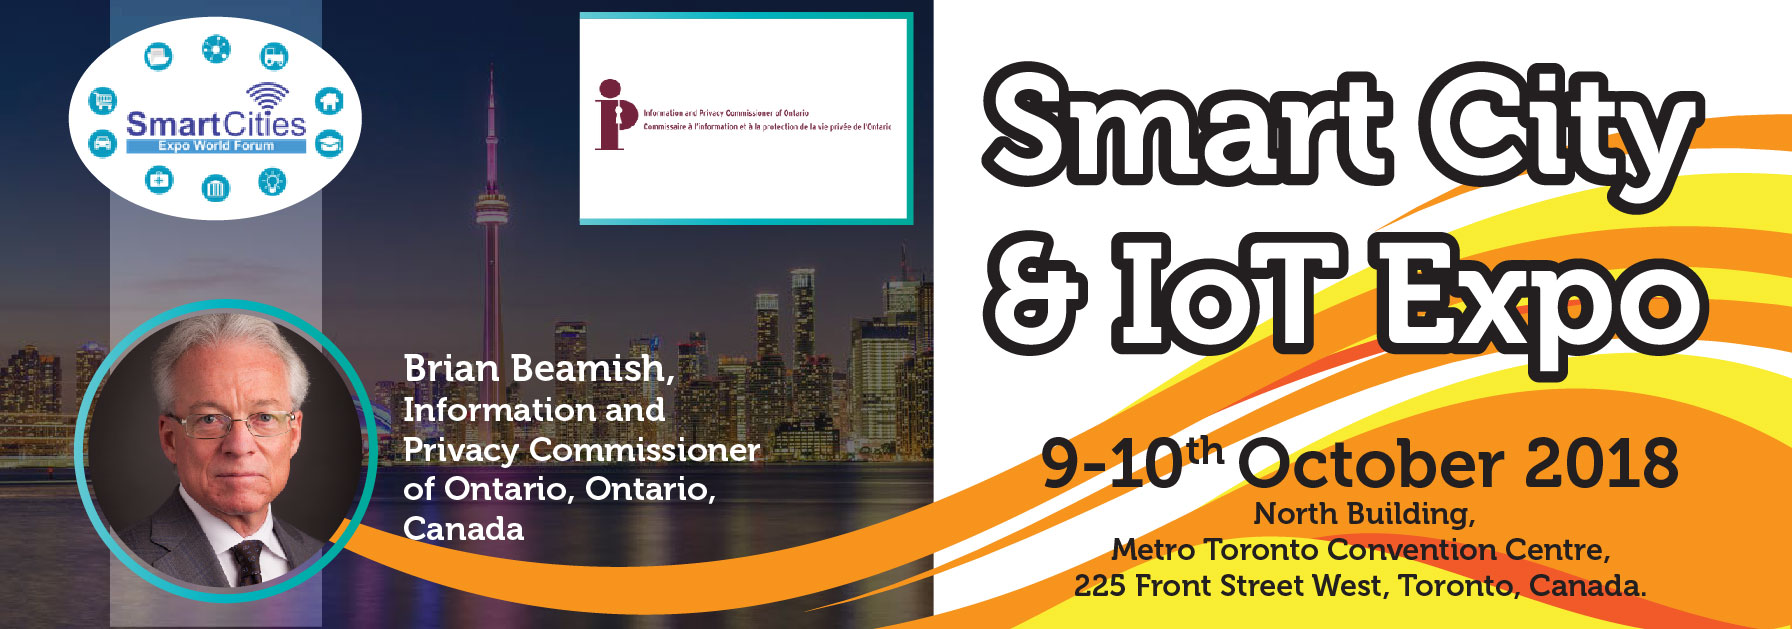 Smart Cities Expo World Forum is pleased to announce the presence of Brian Beamish, Information and Privacy Commissioner of Ontario, Ontario, Canada at Smart City & IoT Expo 9-10 Oct. 2018, Metro Toronto Convention Center, Toronto, Canada. Register Now: www.SmartCitiesExpoWorldForum.ca